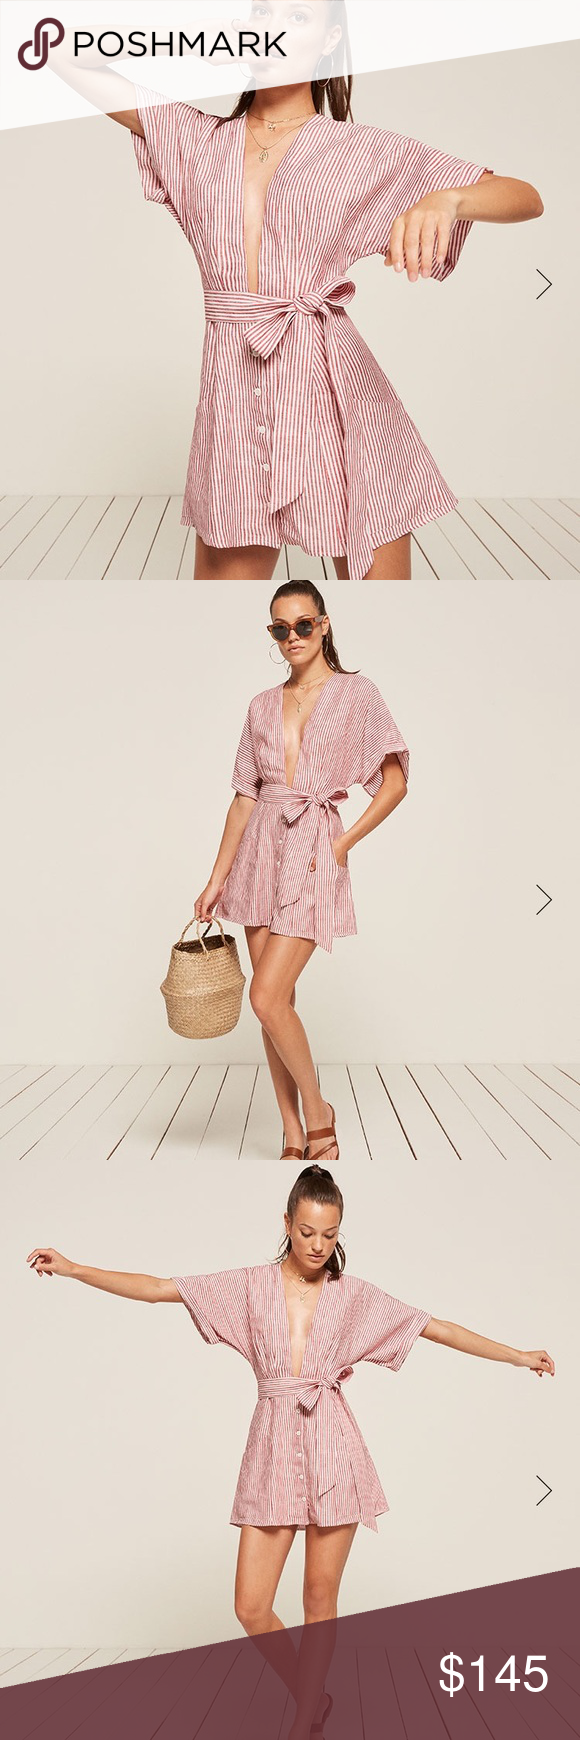 df3ff1ece5a0 ✨NWT Reformation Cecilia Dress The loveliest linen mini dress! Decided to  sell this one